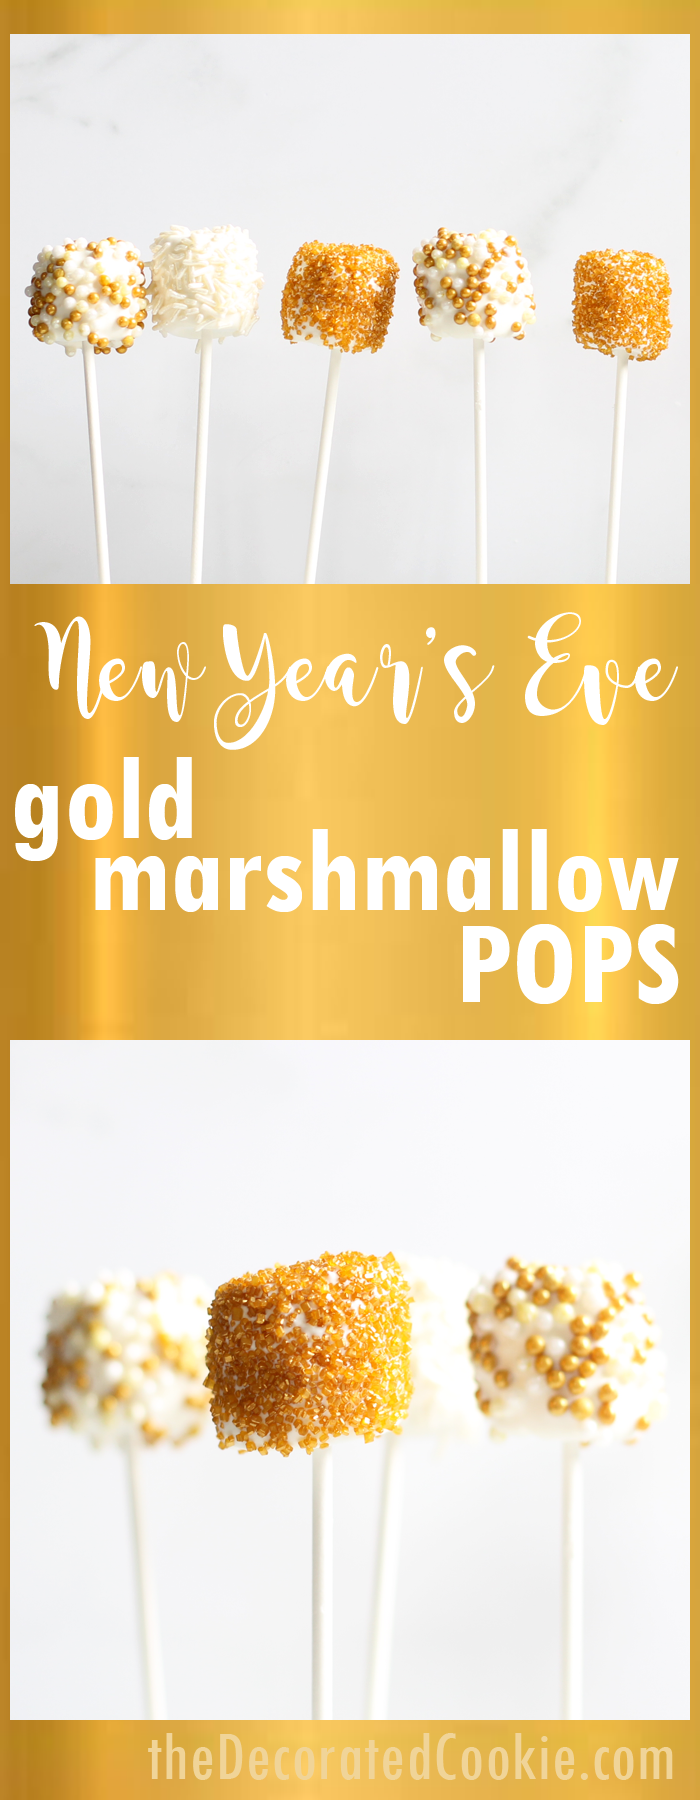 New year's eve marshmallows-- Sparkly gold marshmallow pops